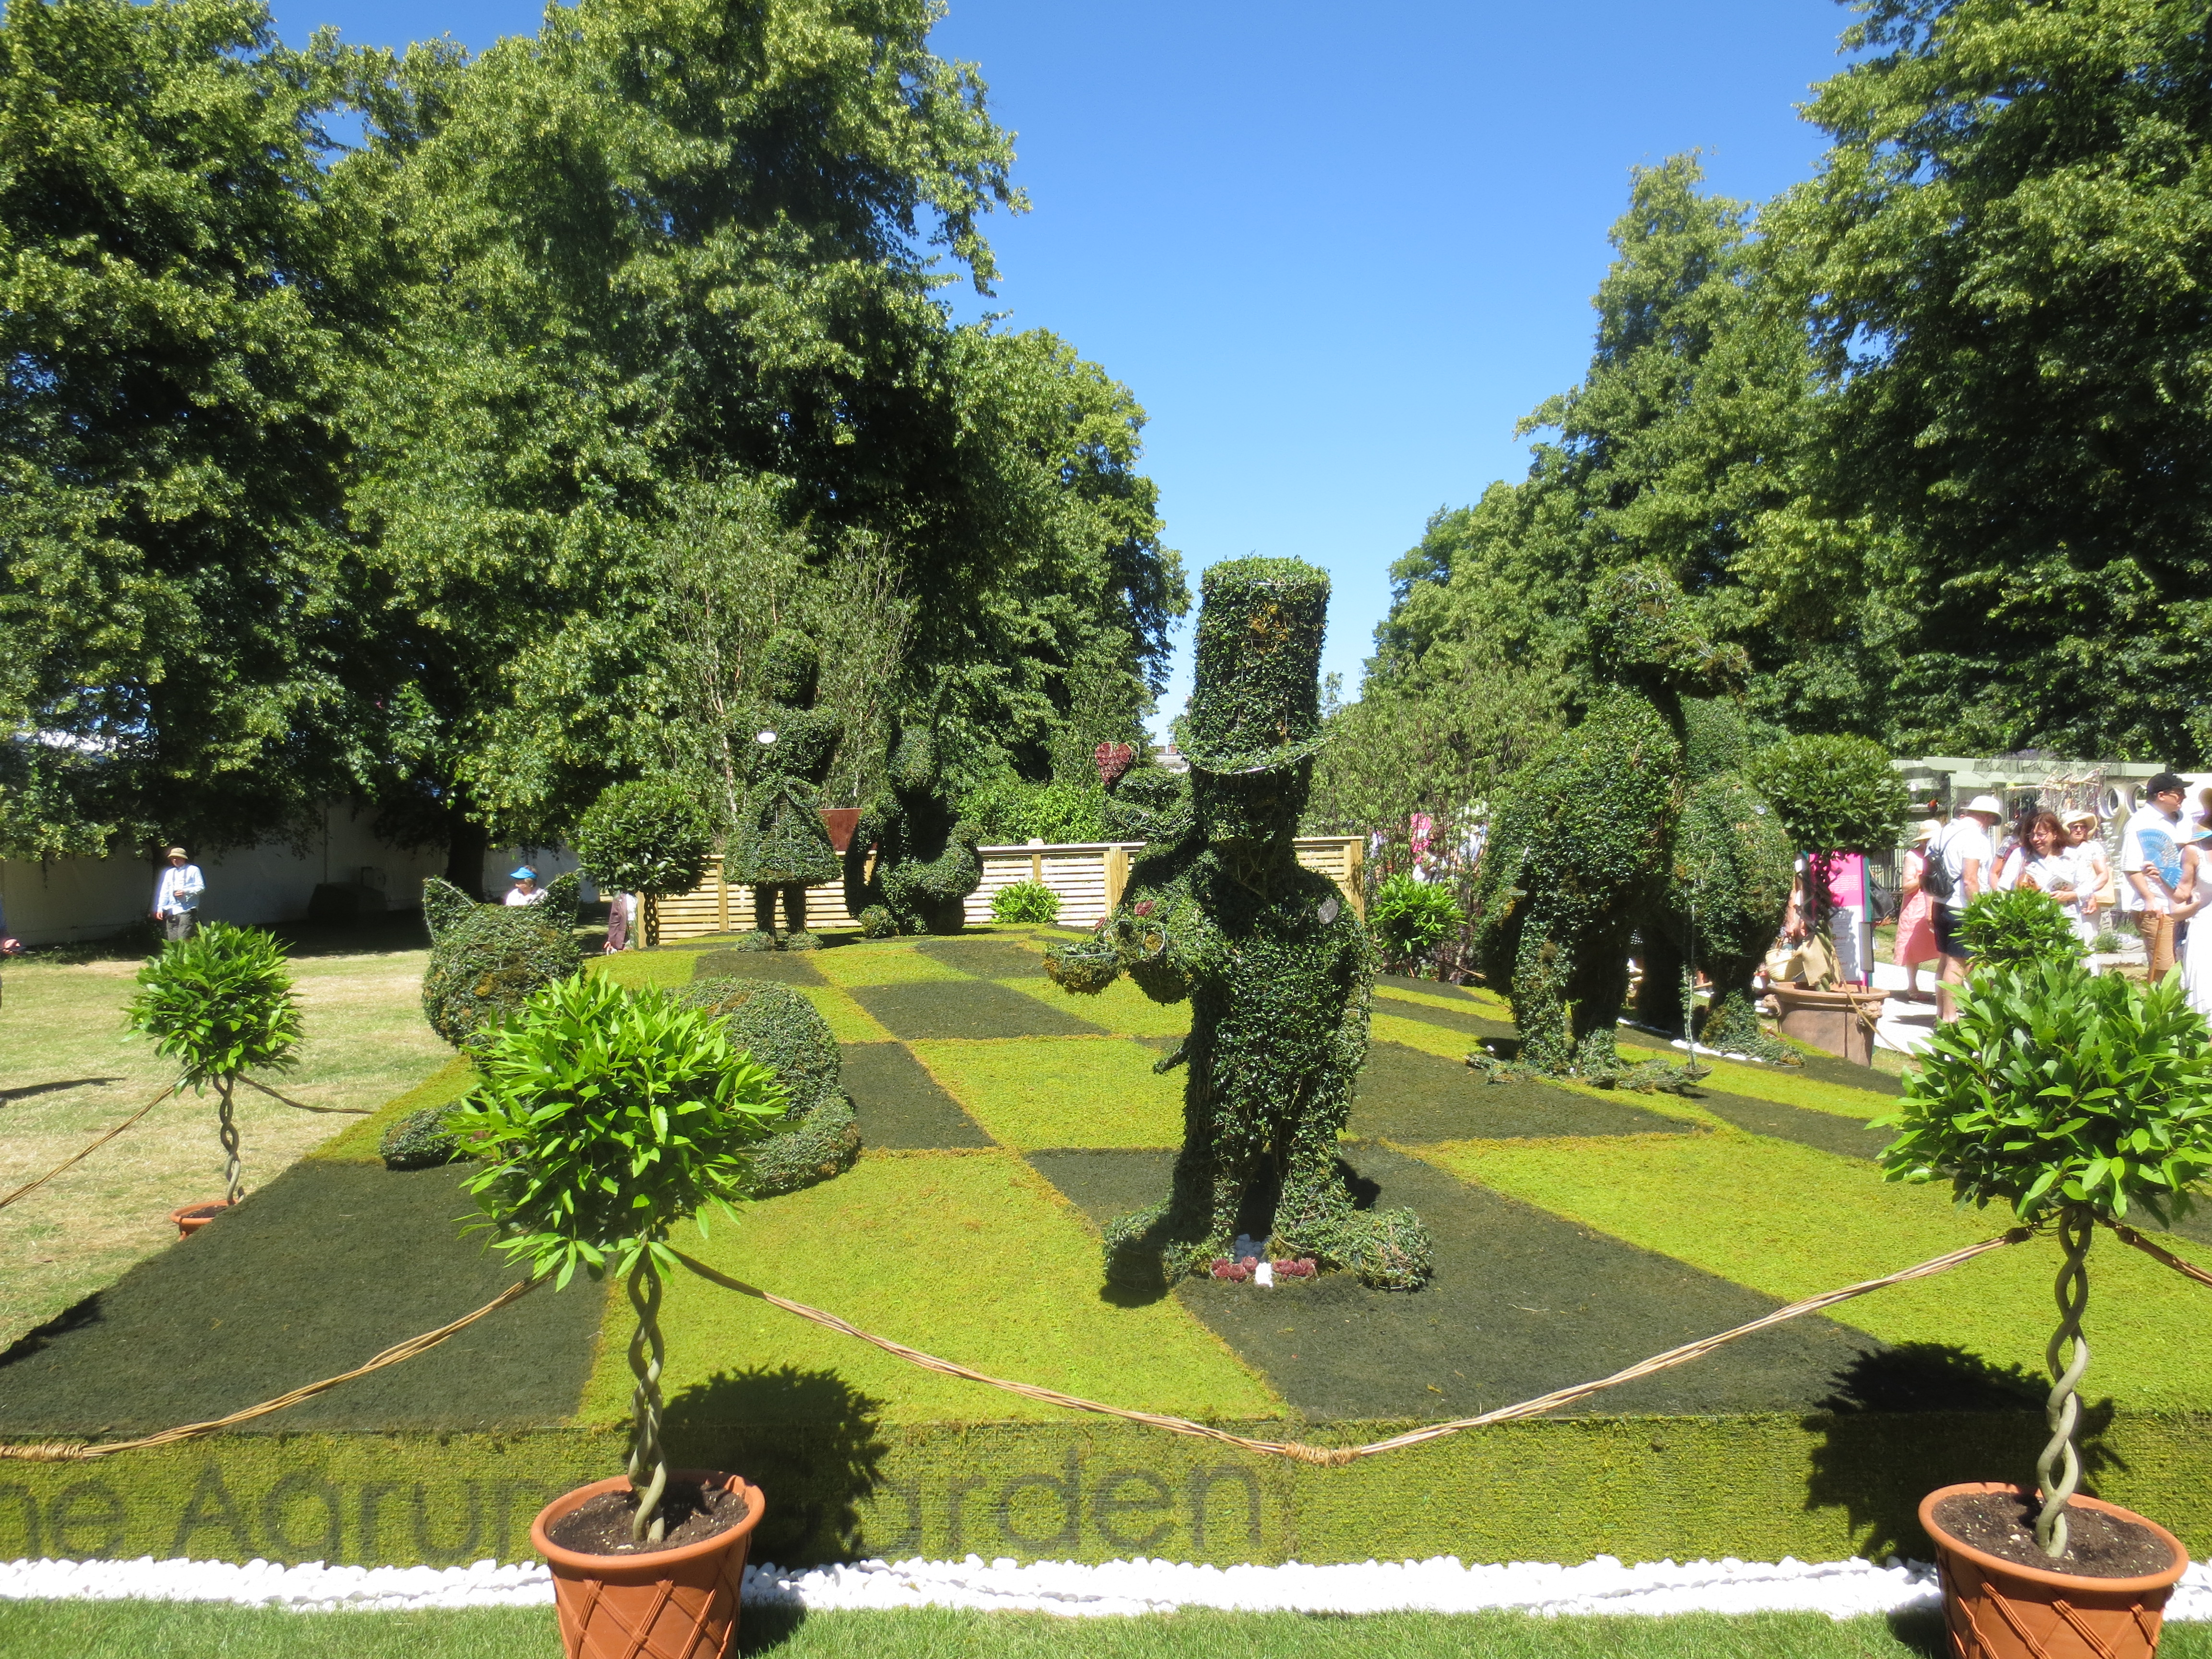 Hampton court palace flower show 2015 travel gourmet - Hampton court flower show ...